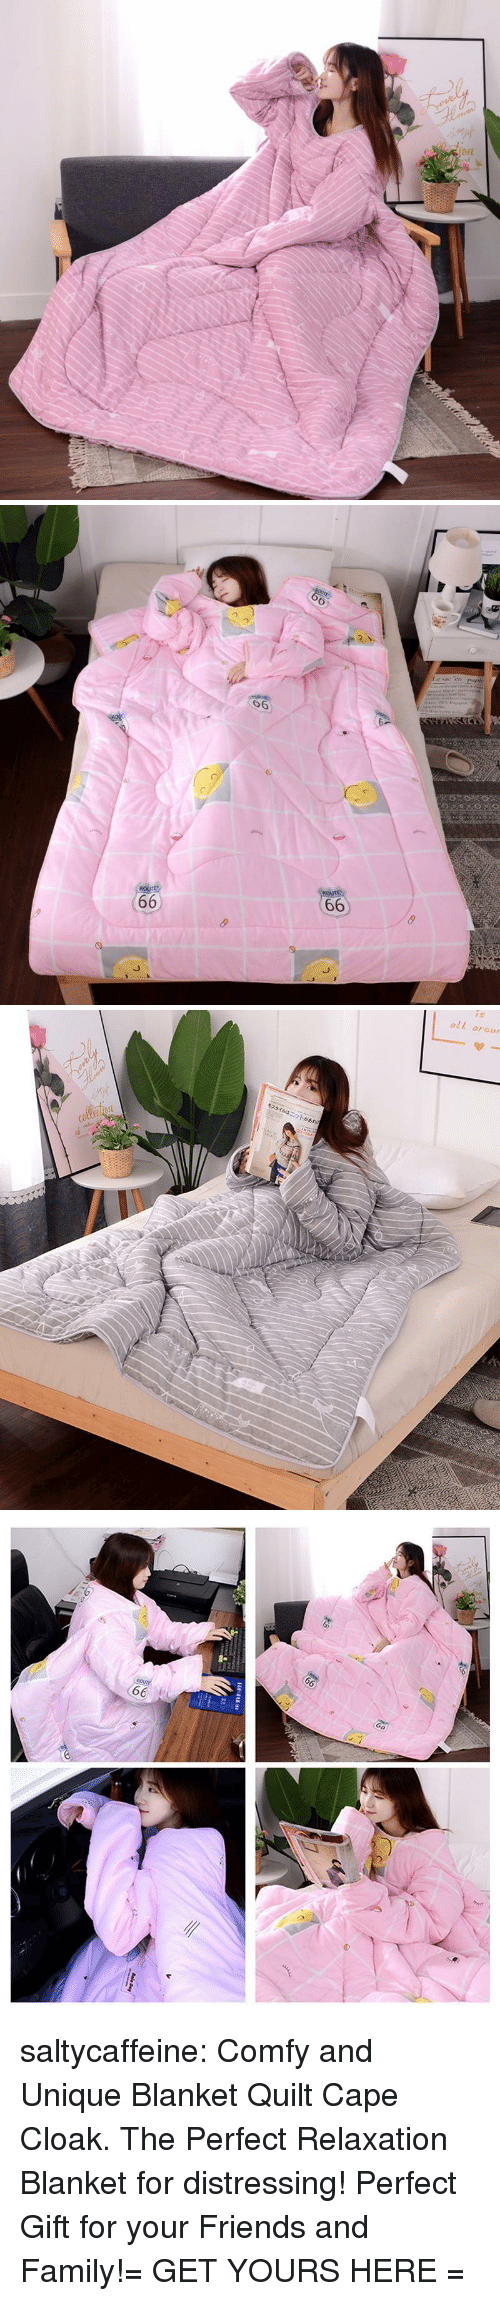 oll: 6  6   oll arour saltycaffeine:  Comfy and Unique Blanket Quilt Cape Cloak. The Perfect Relaxation Blanket for distressing! Perfect Gift for your Friends and Family!= GET YOURS HERE =